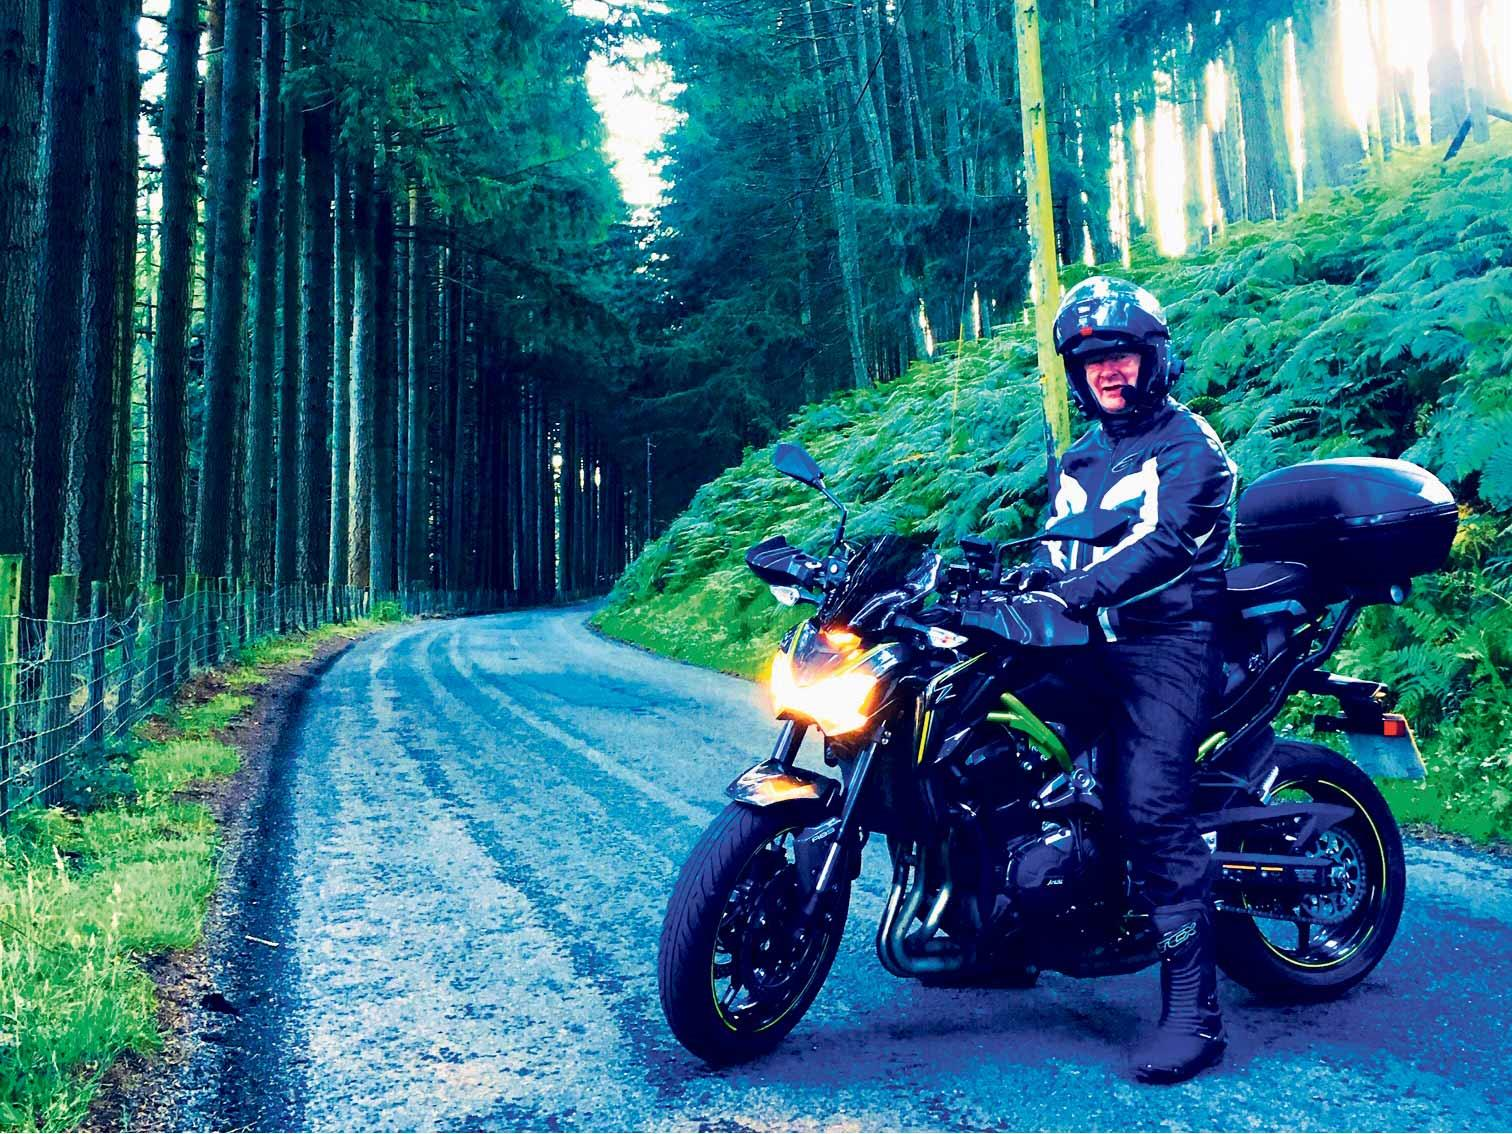 Richard Bentham swapped his Kawasaki ZZR600 for a Z900